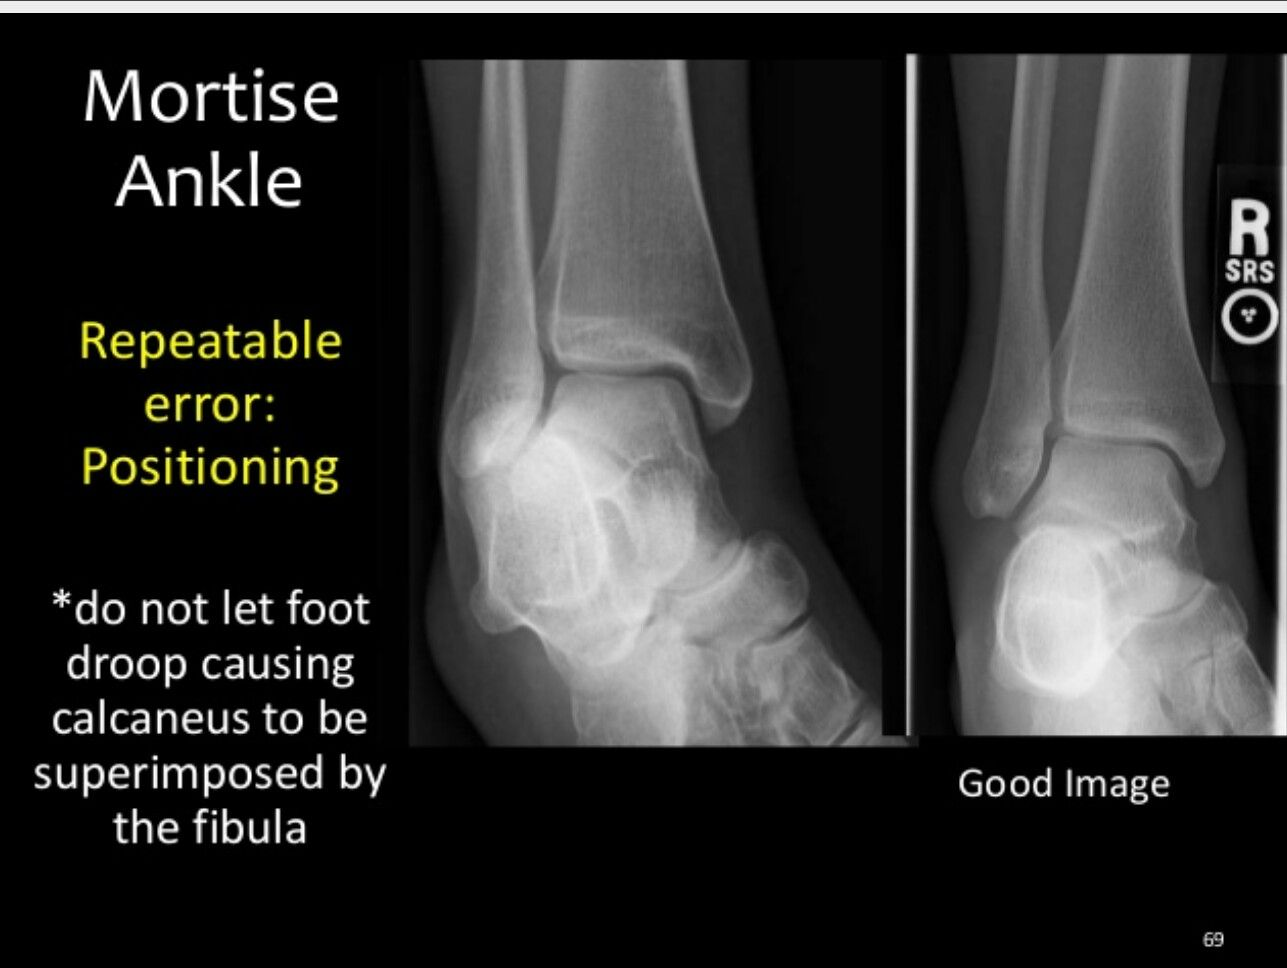 Mortise ankle | Rad tech | Pinterest | Radiology and Rad tech